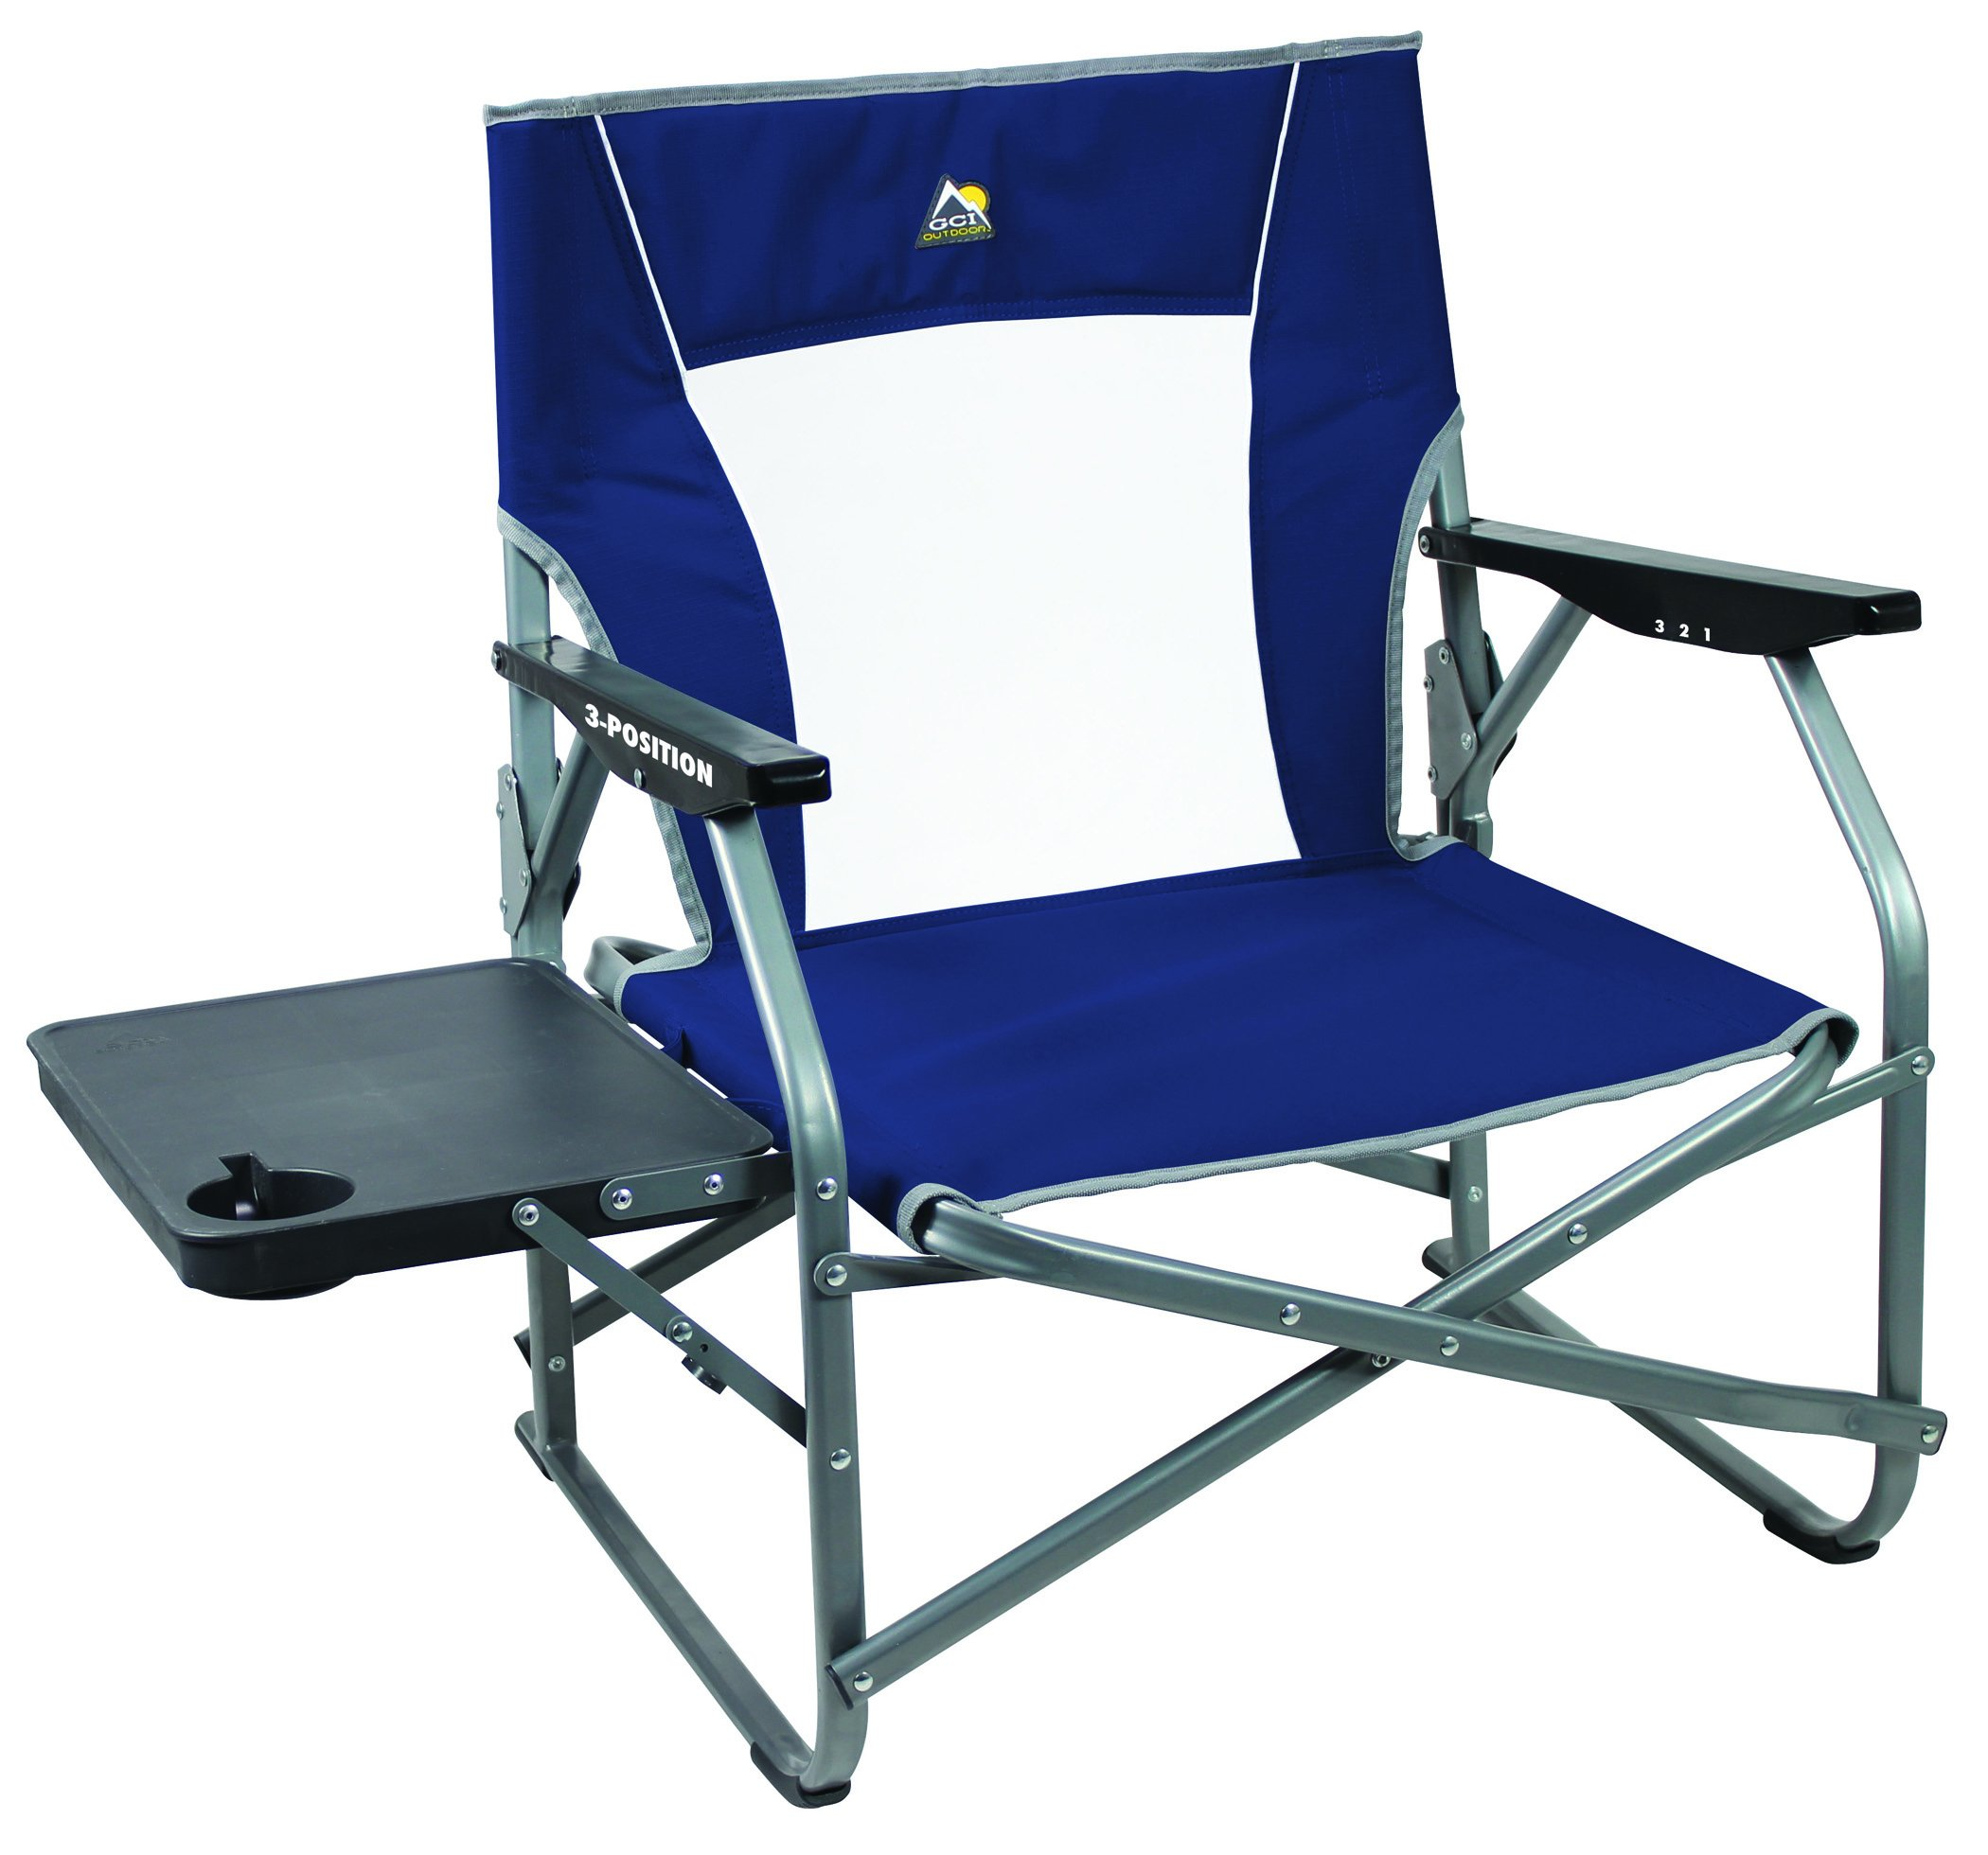 Buy Gci Outdoor 3 Position Reclining Low Height Folding Lawn